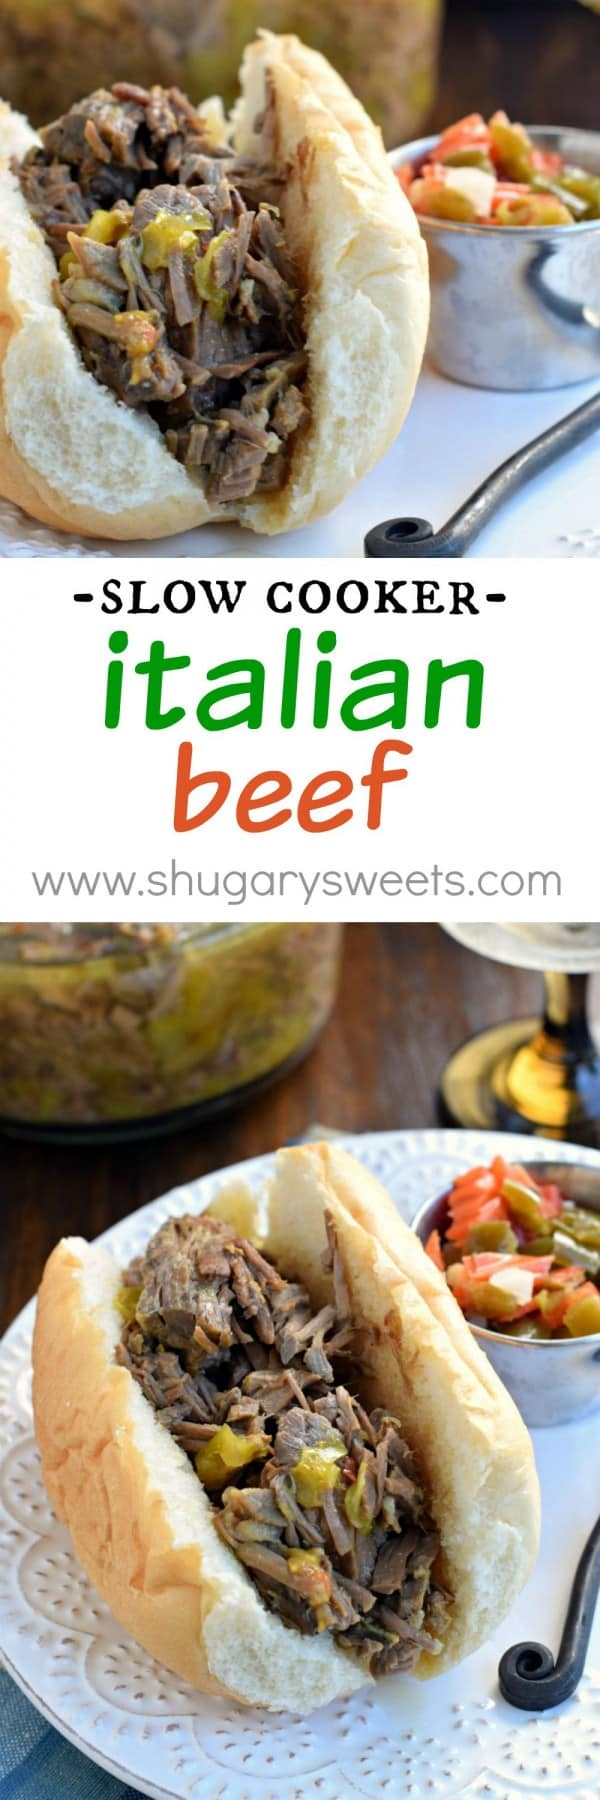 This Slow Cooker Italian Beef is a Chicago classic! Easy to make with little prep work for your crockpot!